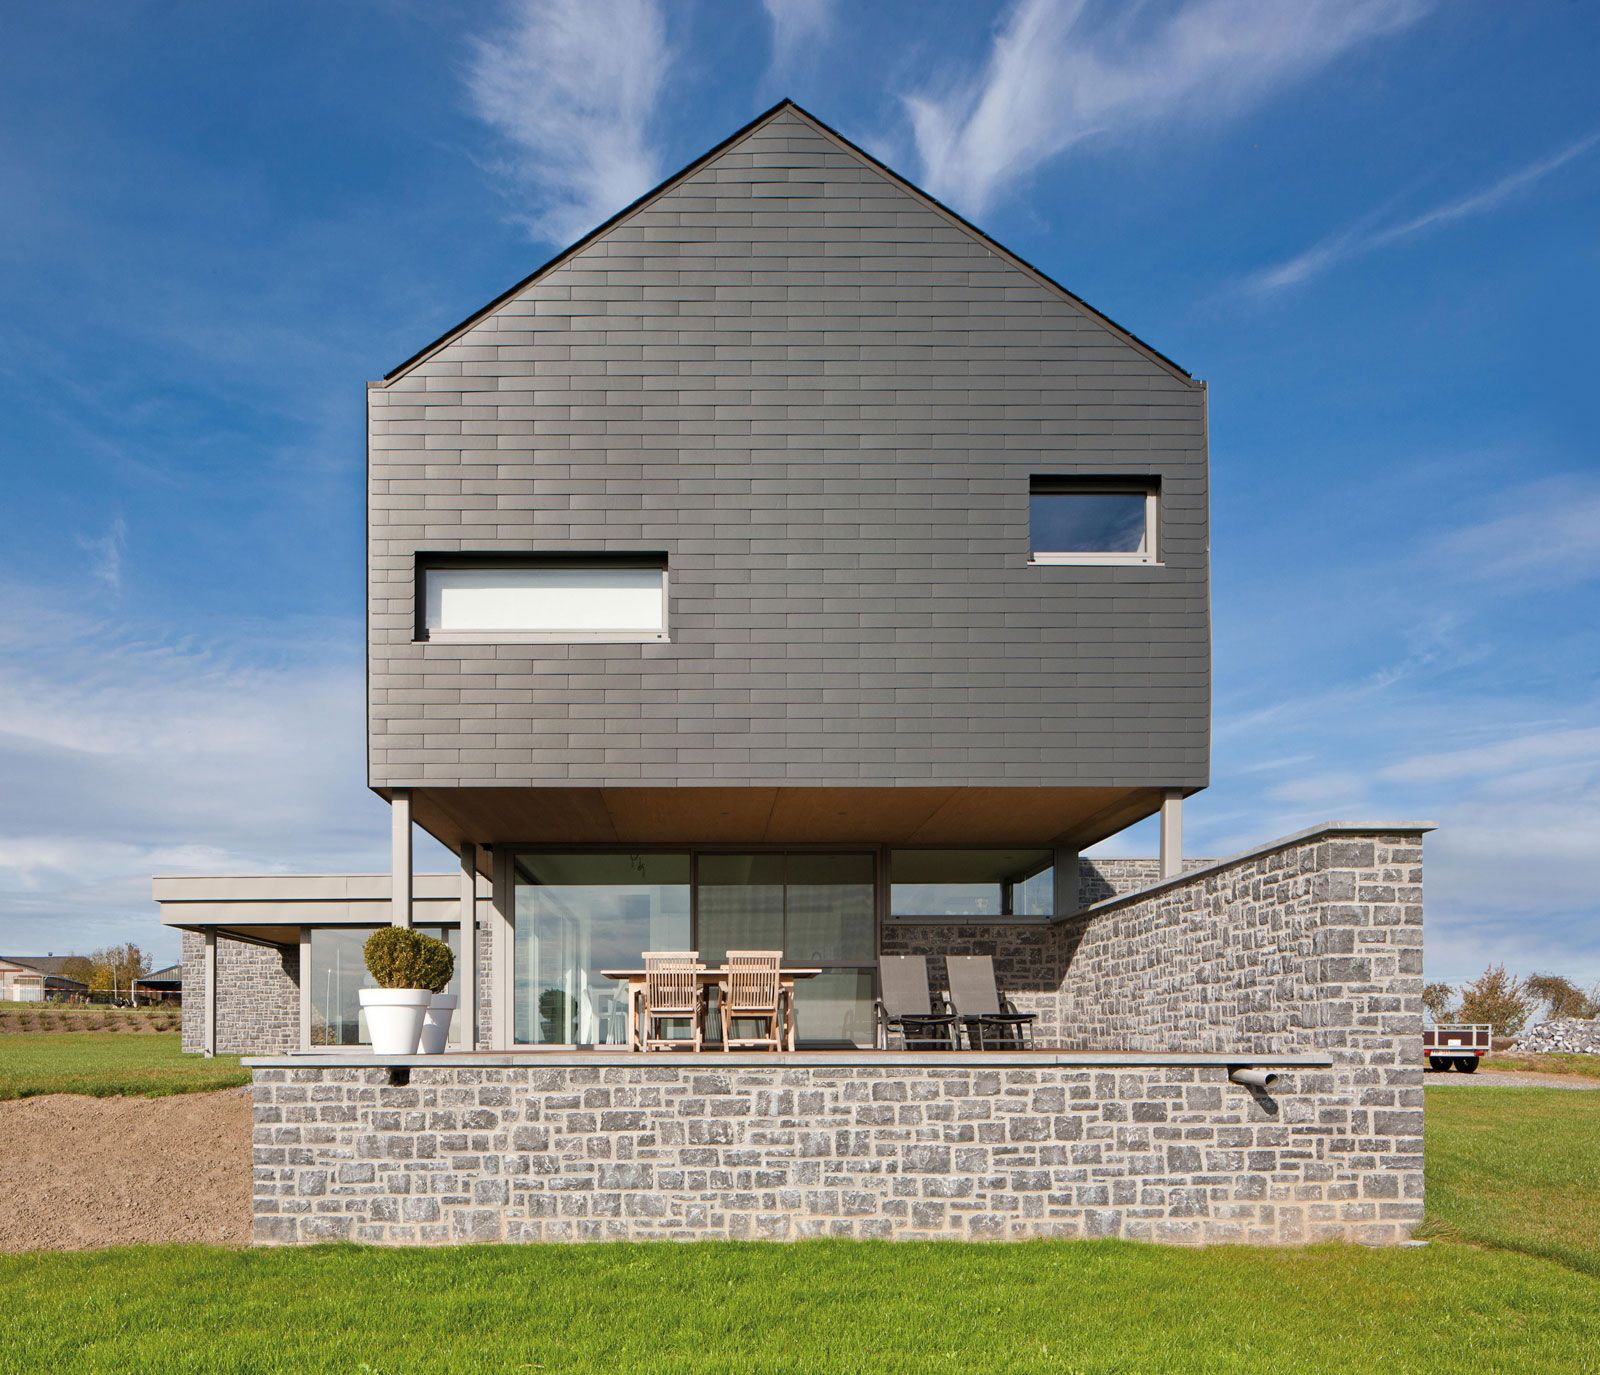 Pin By Anna W On Little House In 2020 Facade House Fibre Cement Cladding Cladding